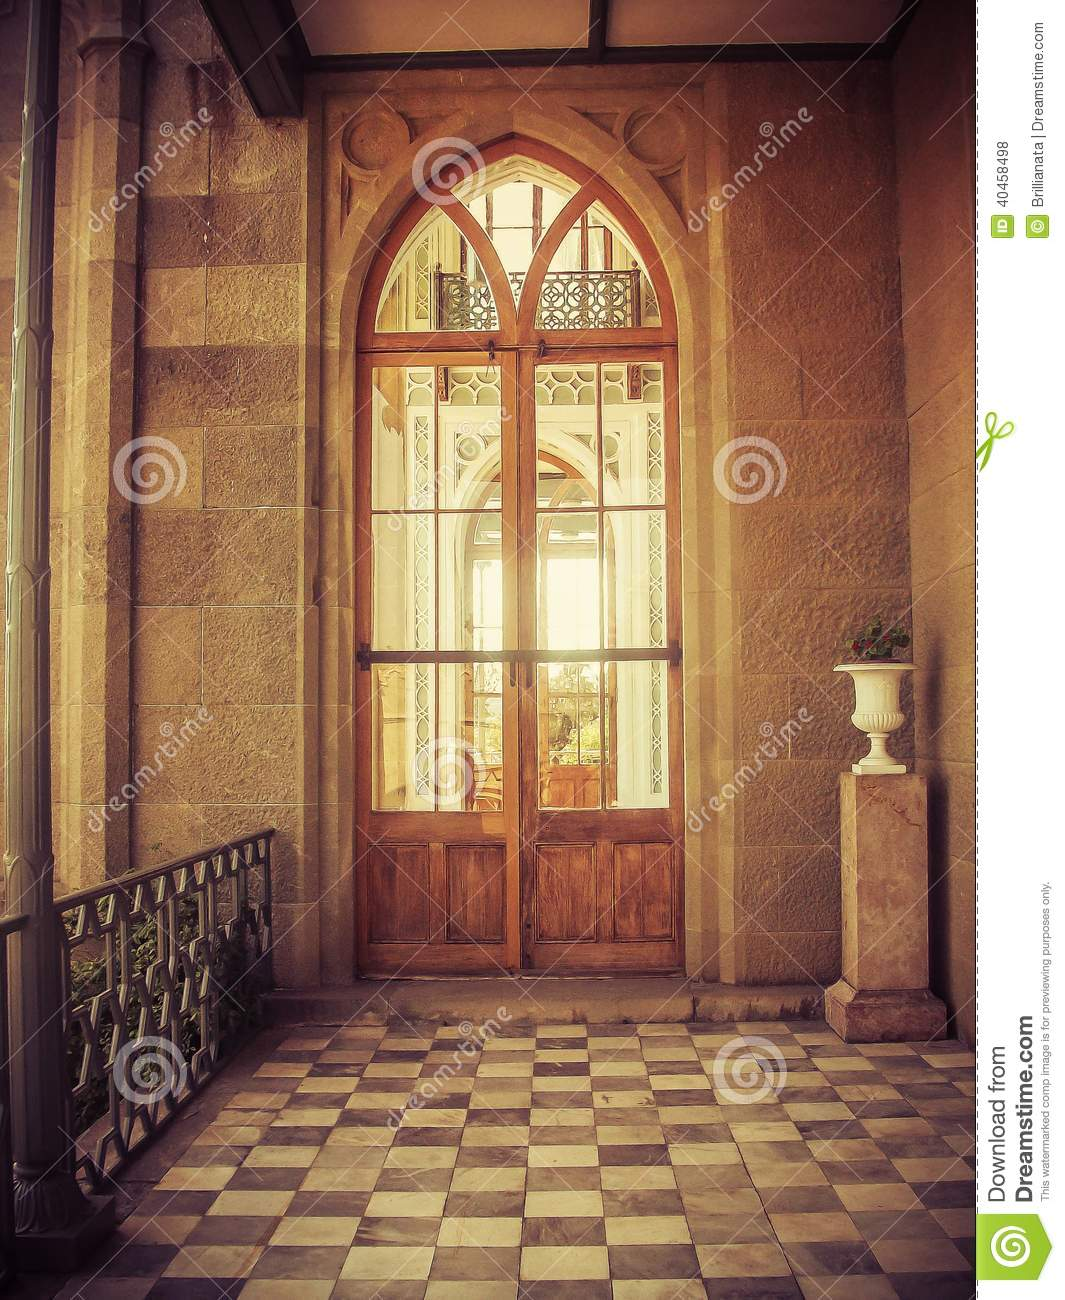 Oldcastle glass doors oldcastle glass shower doors inviting oldcastle glass doors gallery glass door interior doors patio oldcastle glass doors images glass door interior eventelaan Image collections